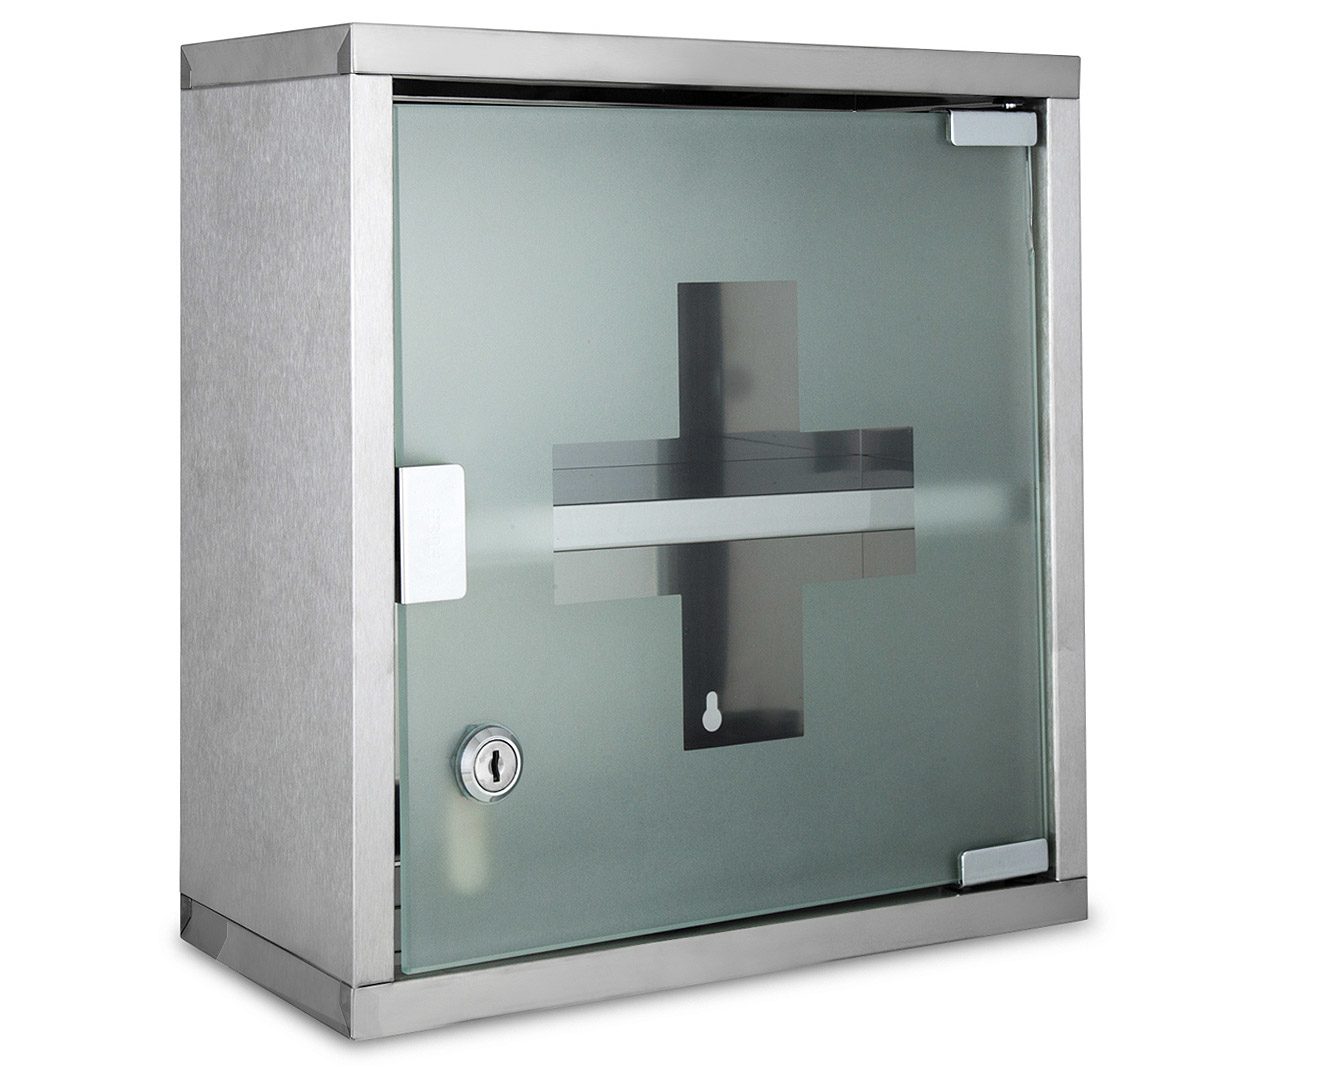 Mileno 30x30x12cm lockable wall mounted medicine cabinet Wall mounted medicine cabinet